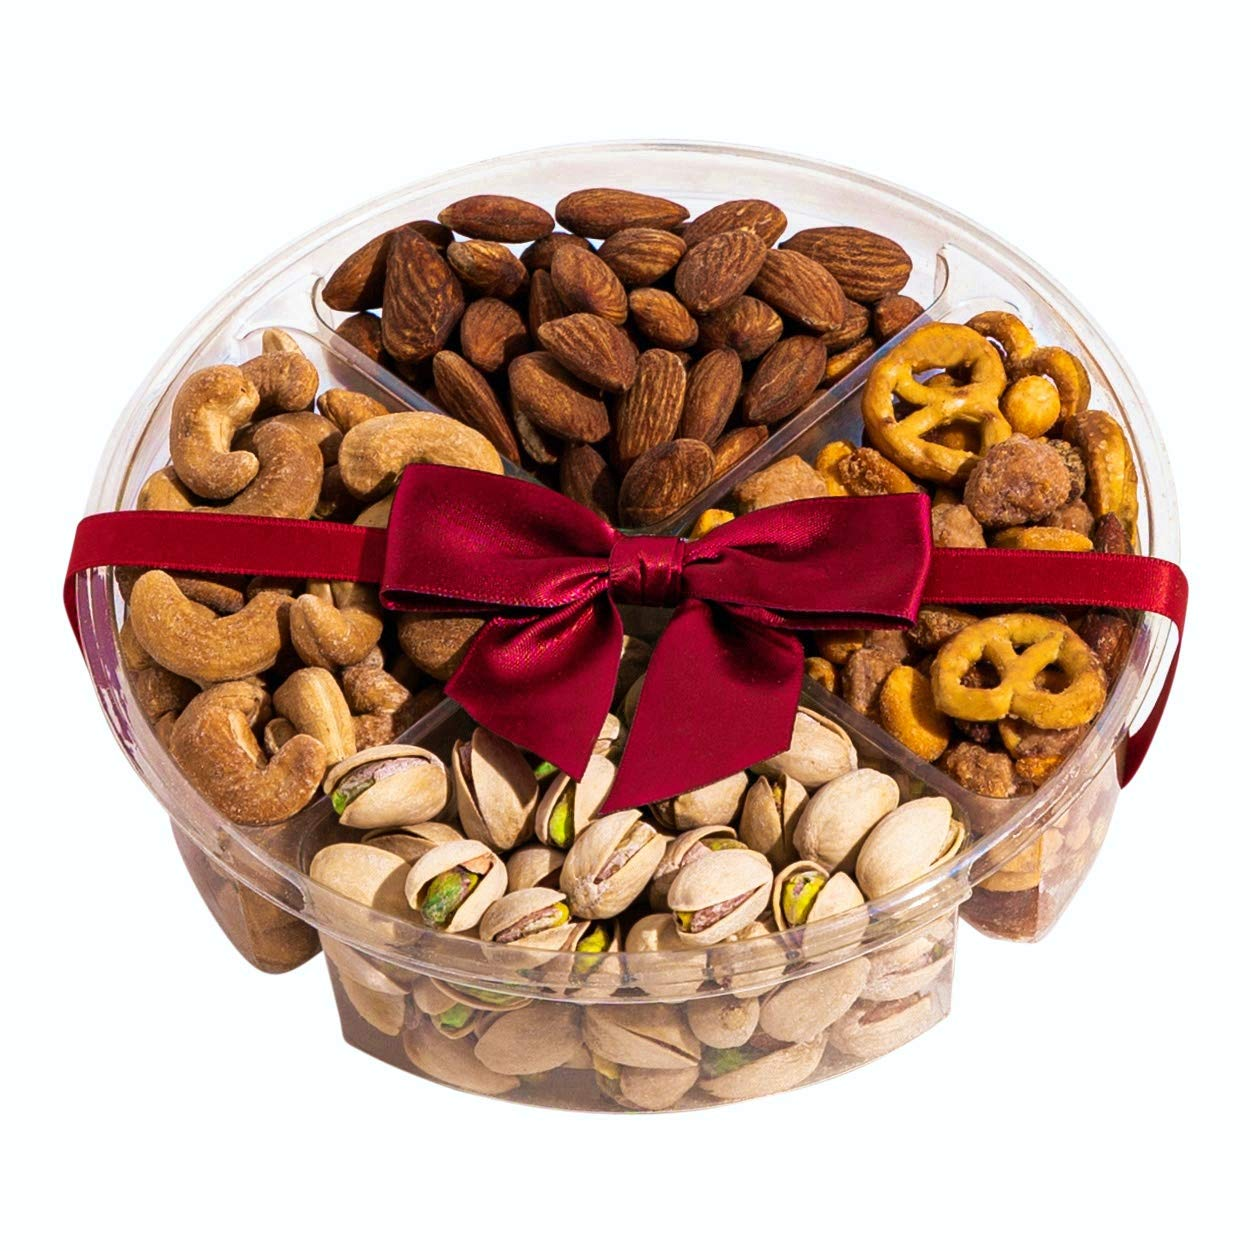 Simple Nuts Holiday Gift Baskets | Assorted Nuts Care Package, Ultra Fresh Nuts, Never Stale | Gourmet Food Snack Gift for Holidays, Christmas, Mother's Day, New Year's & More | Fast, Secure Shipping